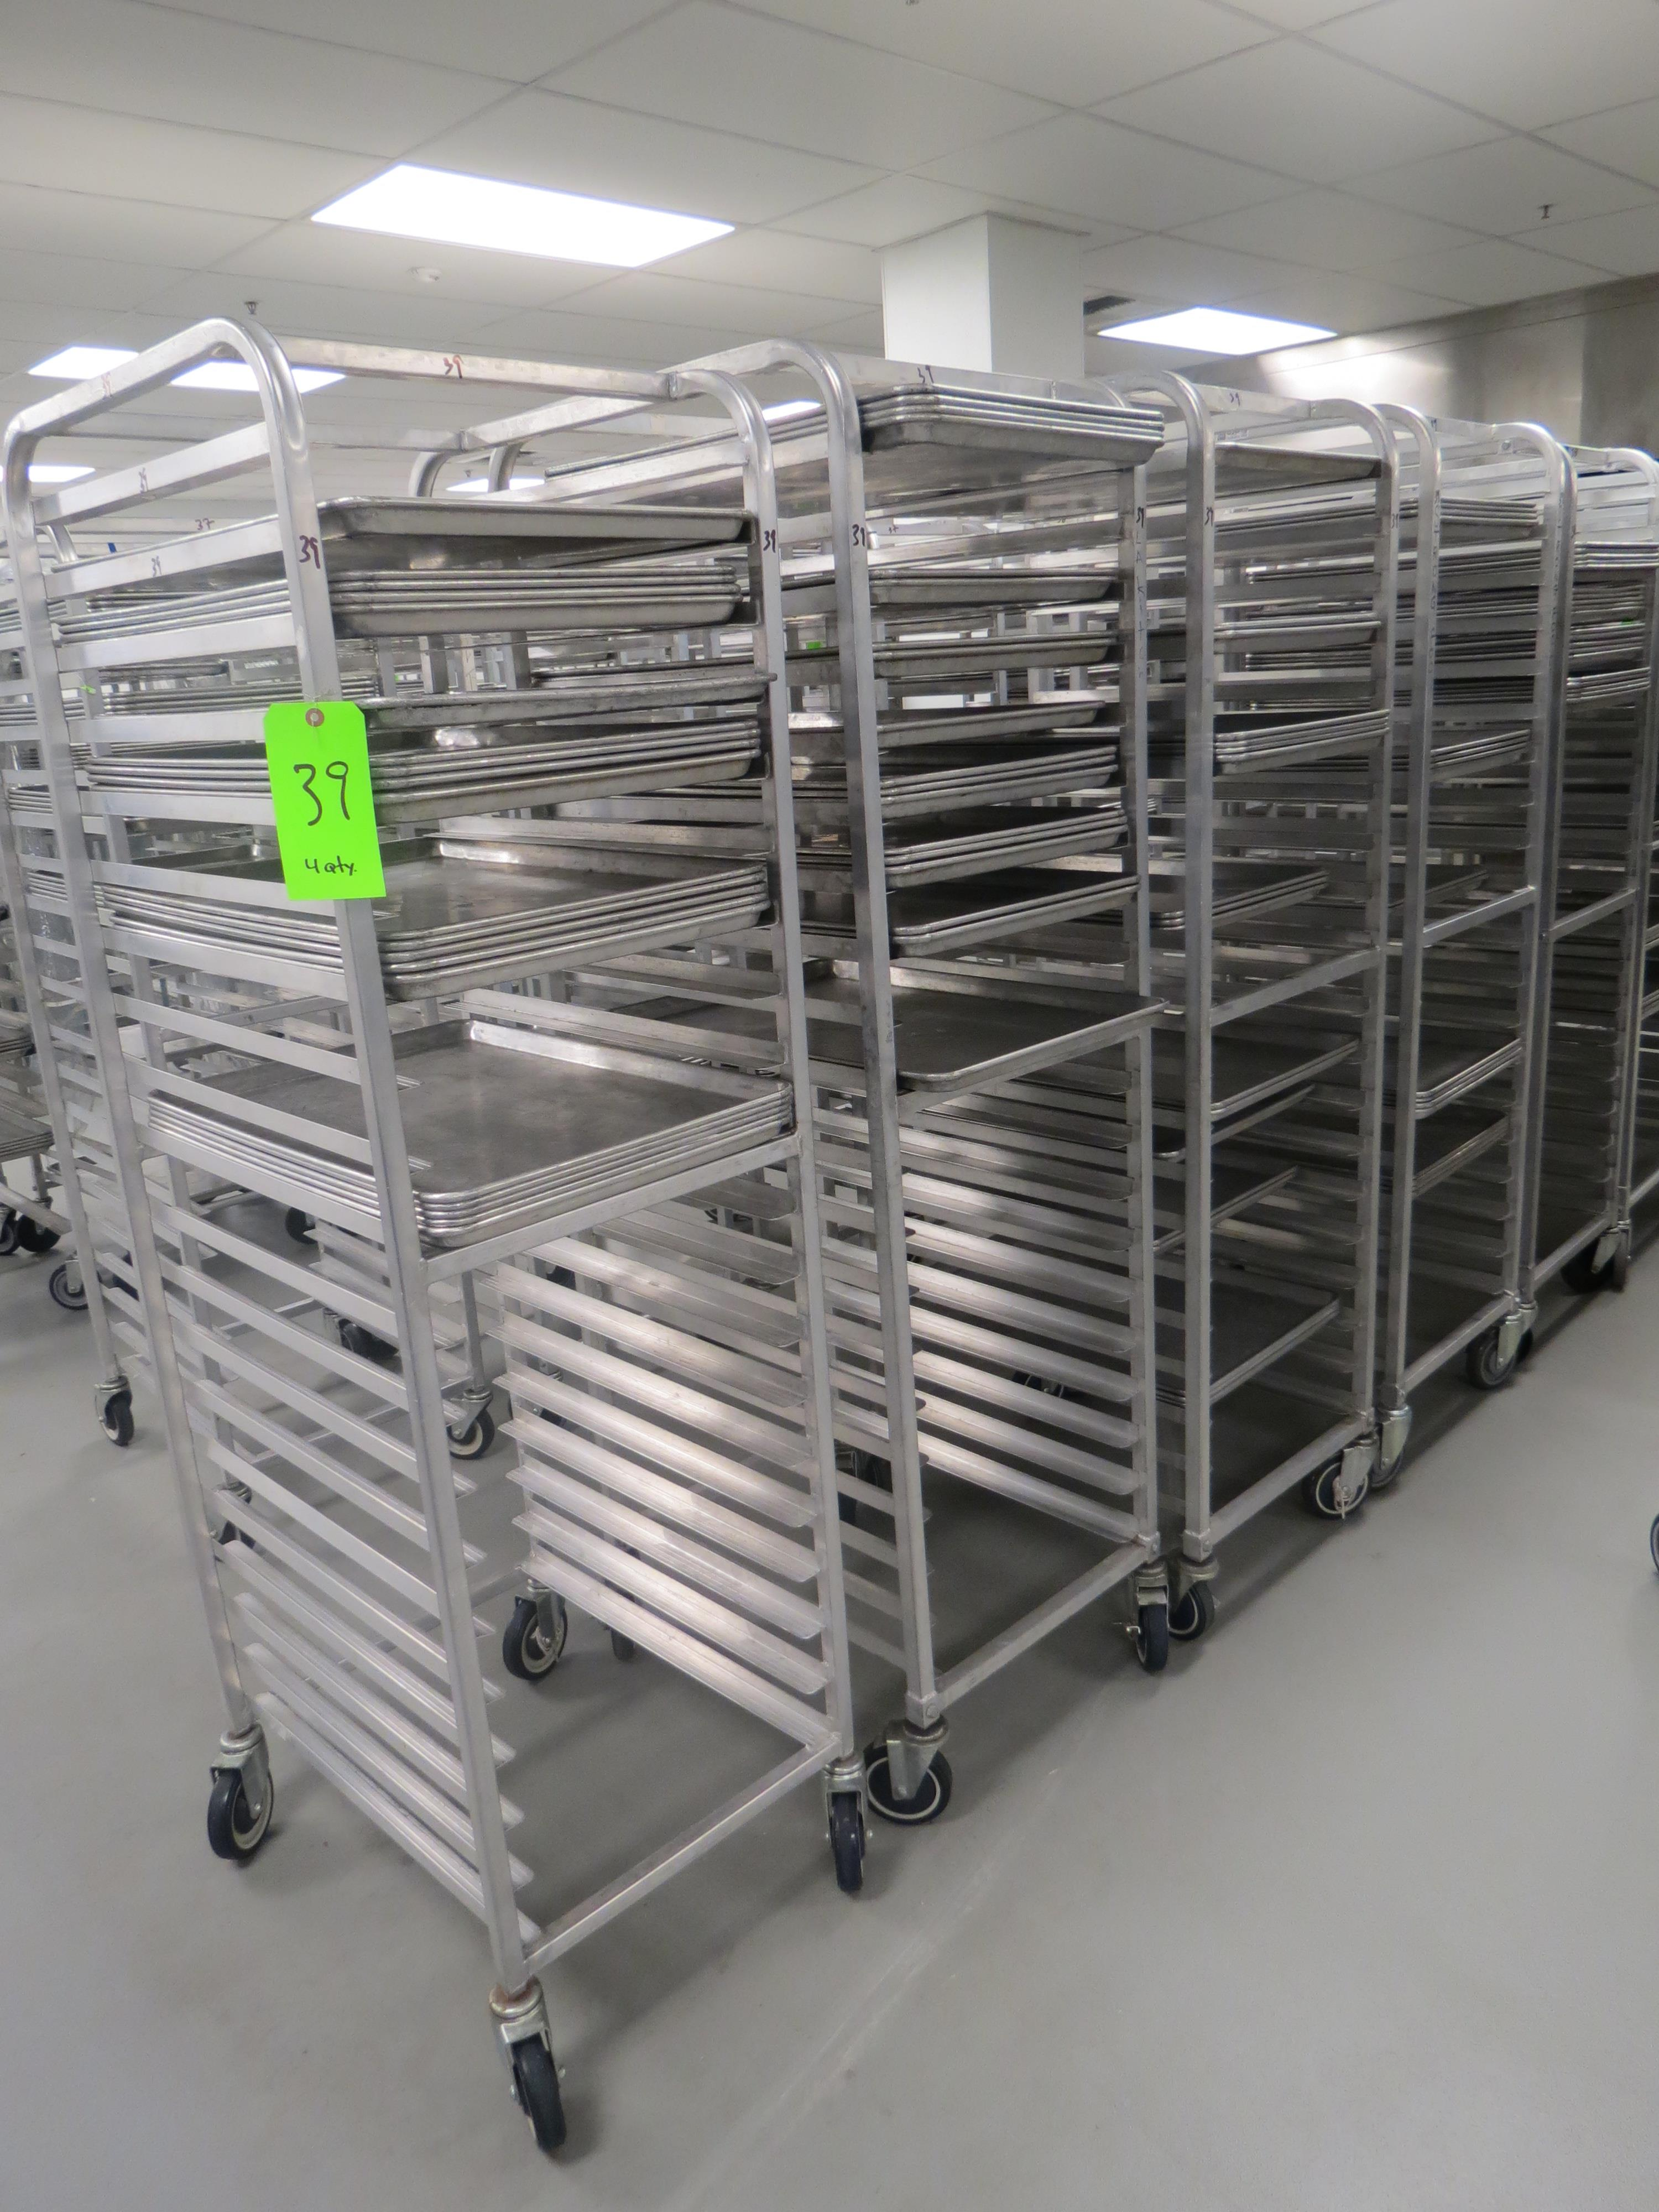 Lot 39 - MOBILE BAKER RACKS WITH 18 TRAYS